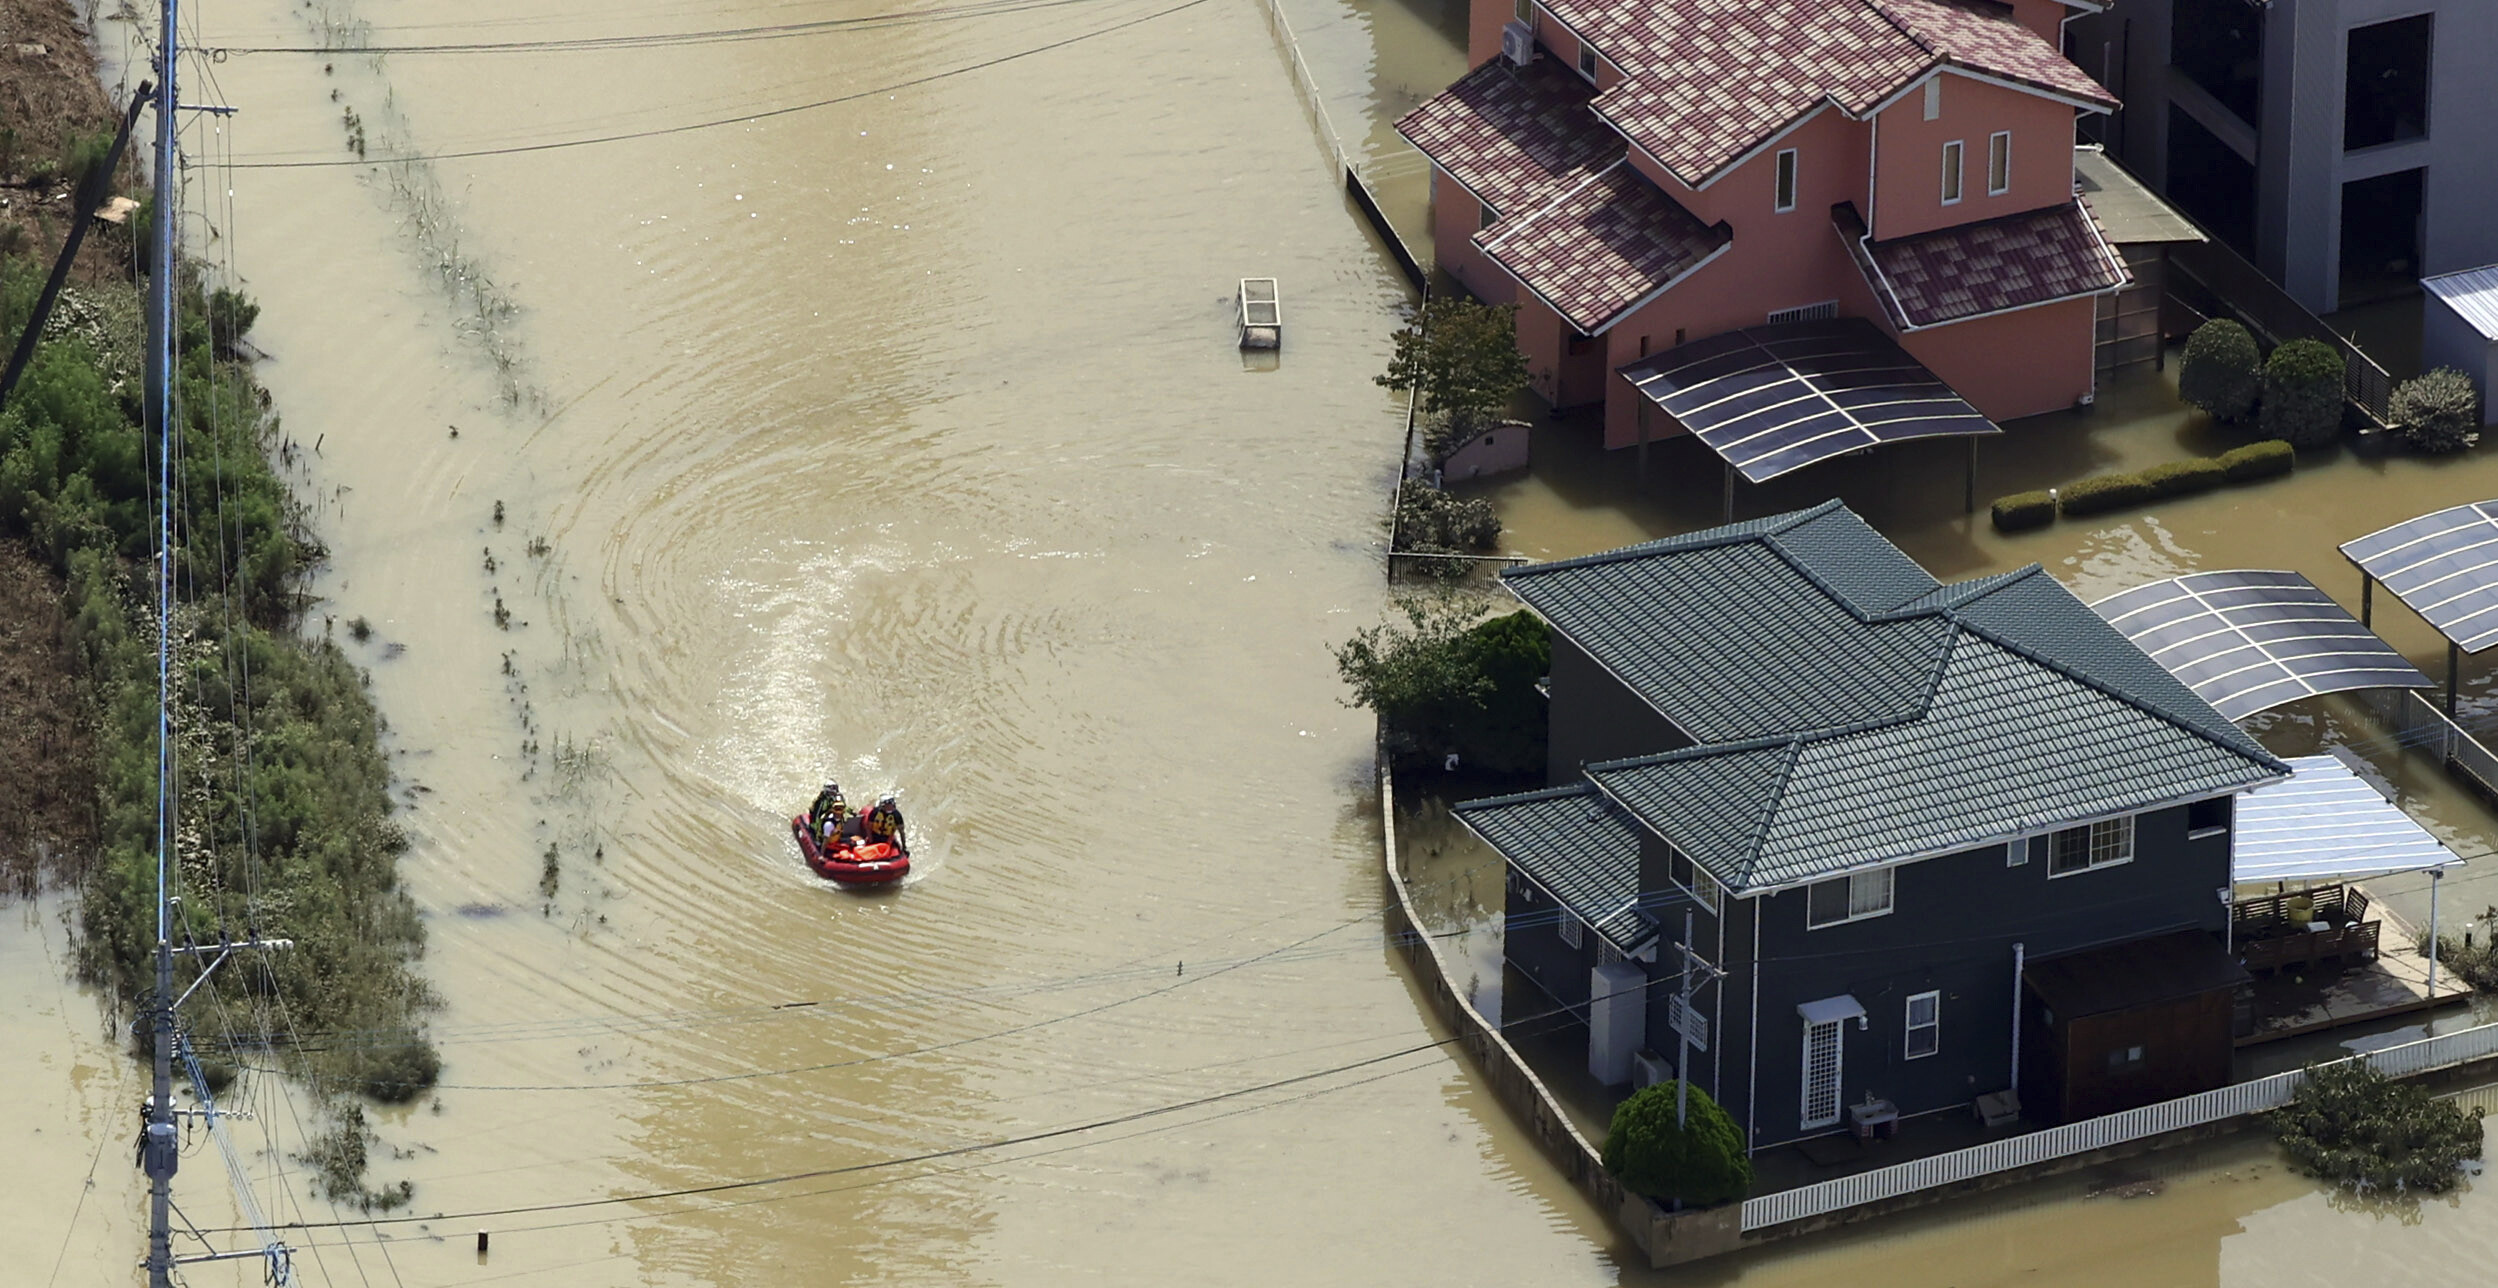 <i>Yomiuri Shimbun/AP</i><br/>Most people around the world don't think the US is doing a good job on the issue of climate change. Flooding due to heavy rain here inundated Takeo City in western Japan on August 15.